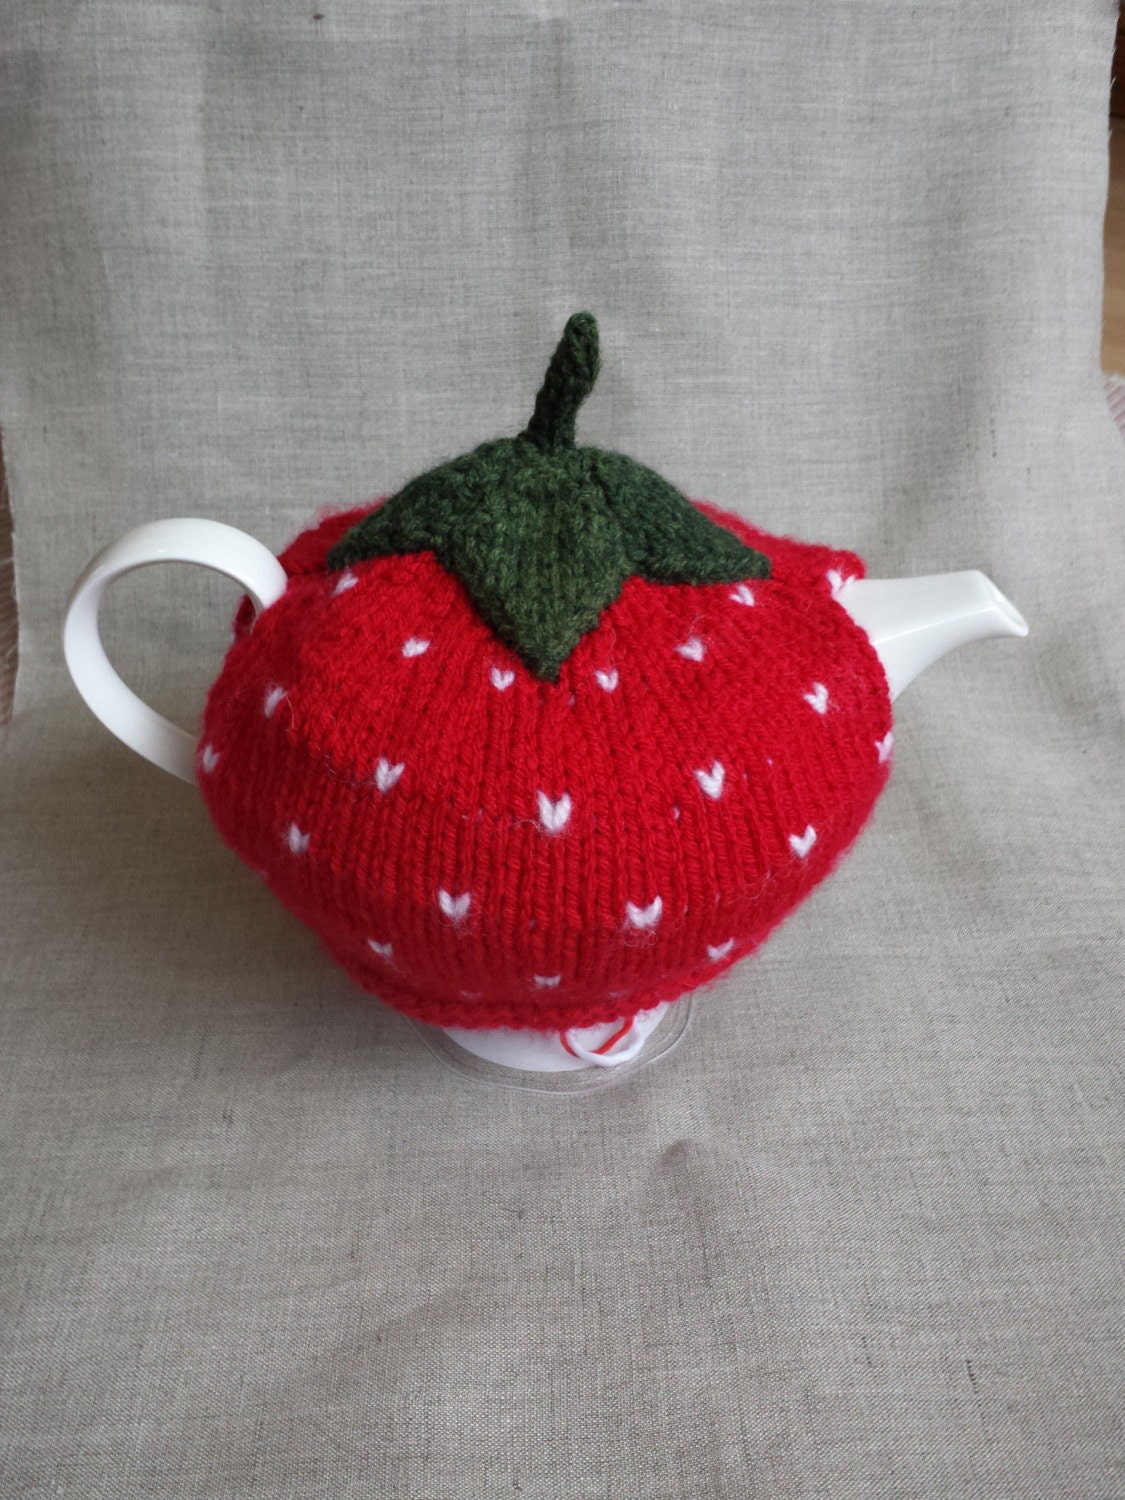 Knitting Pattern For Strawberry Tea Cosy : Hand Knitted Strawberry Tea Cosy